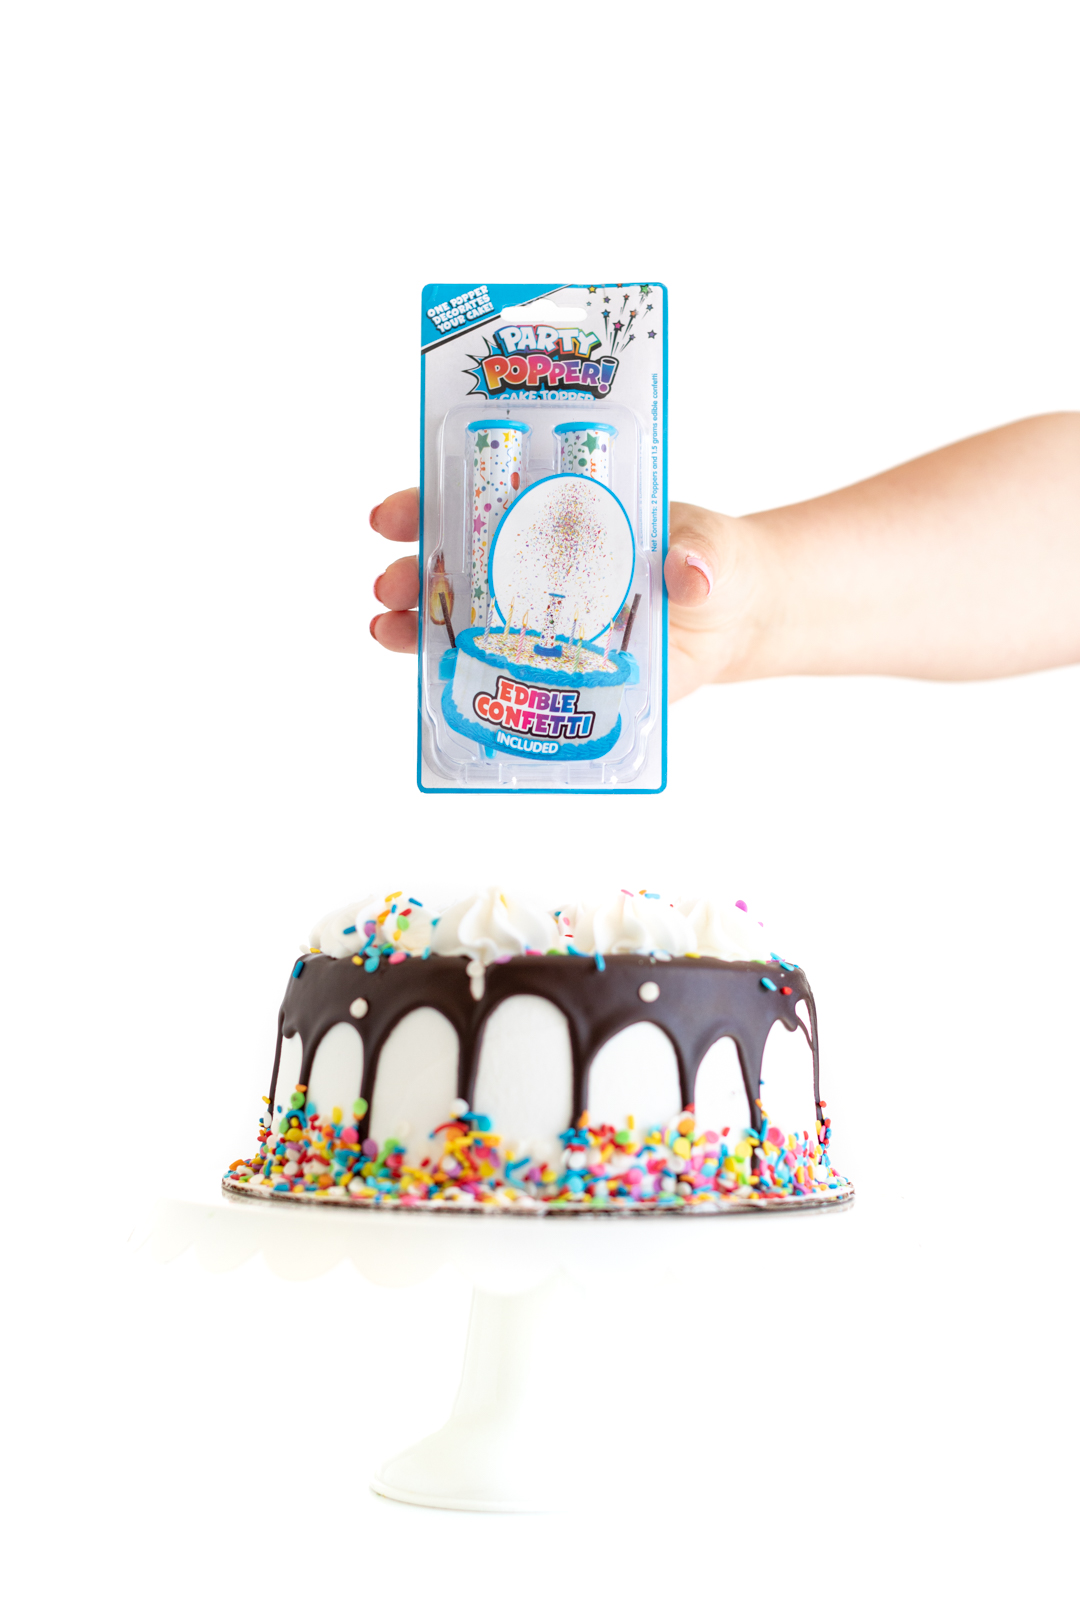 holding a package of party popper! cake topper candle placed on top of a white birthday cake with sprinkles and a chocolate drip.